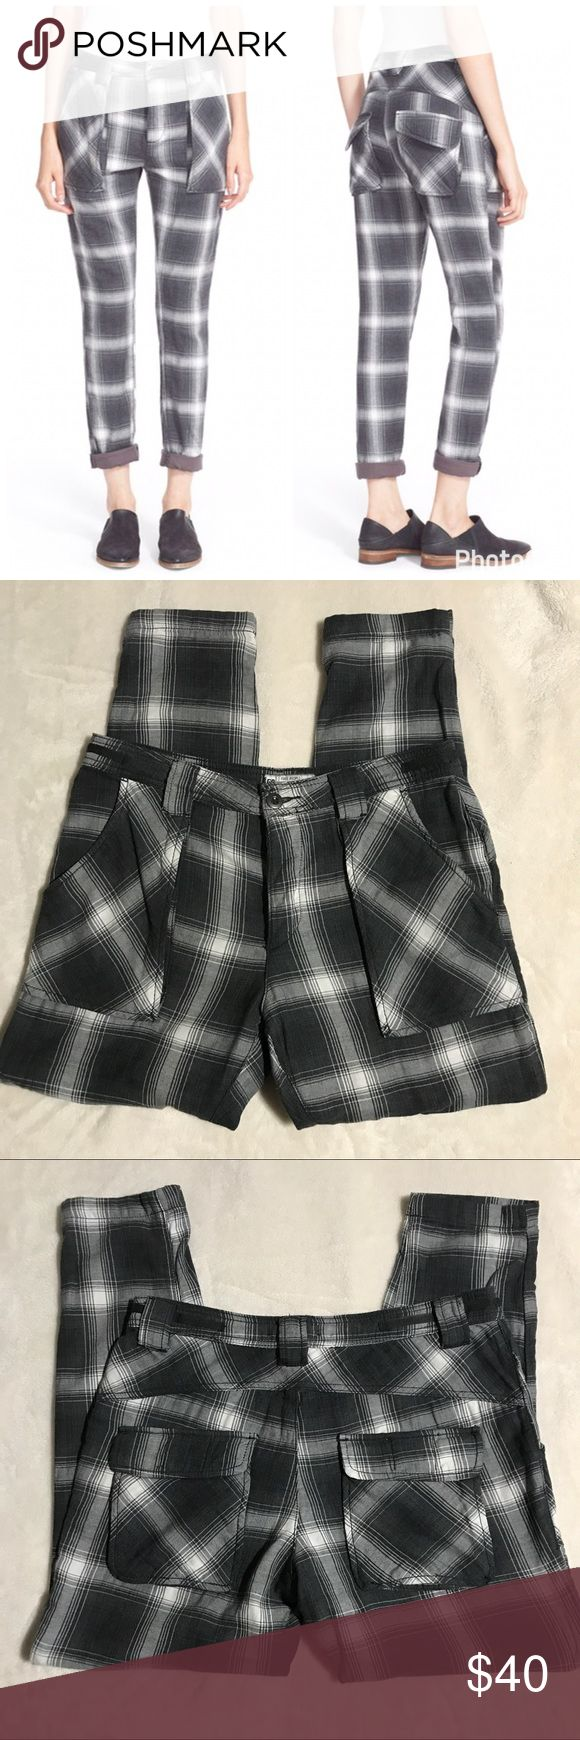 "Free People relaxed Plaid utility pants sz 6 Like new condition free People sz 6 relaxed Plaid utility pants. Super soft flannel material! 100% cotton button fly. Waist flat- 16"", inseam- 28"", rise- 10.5"" Free People Pants Skinny"